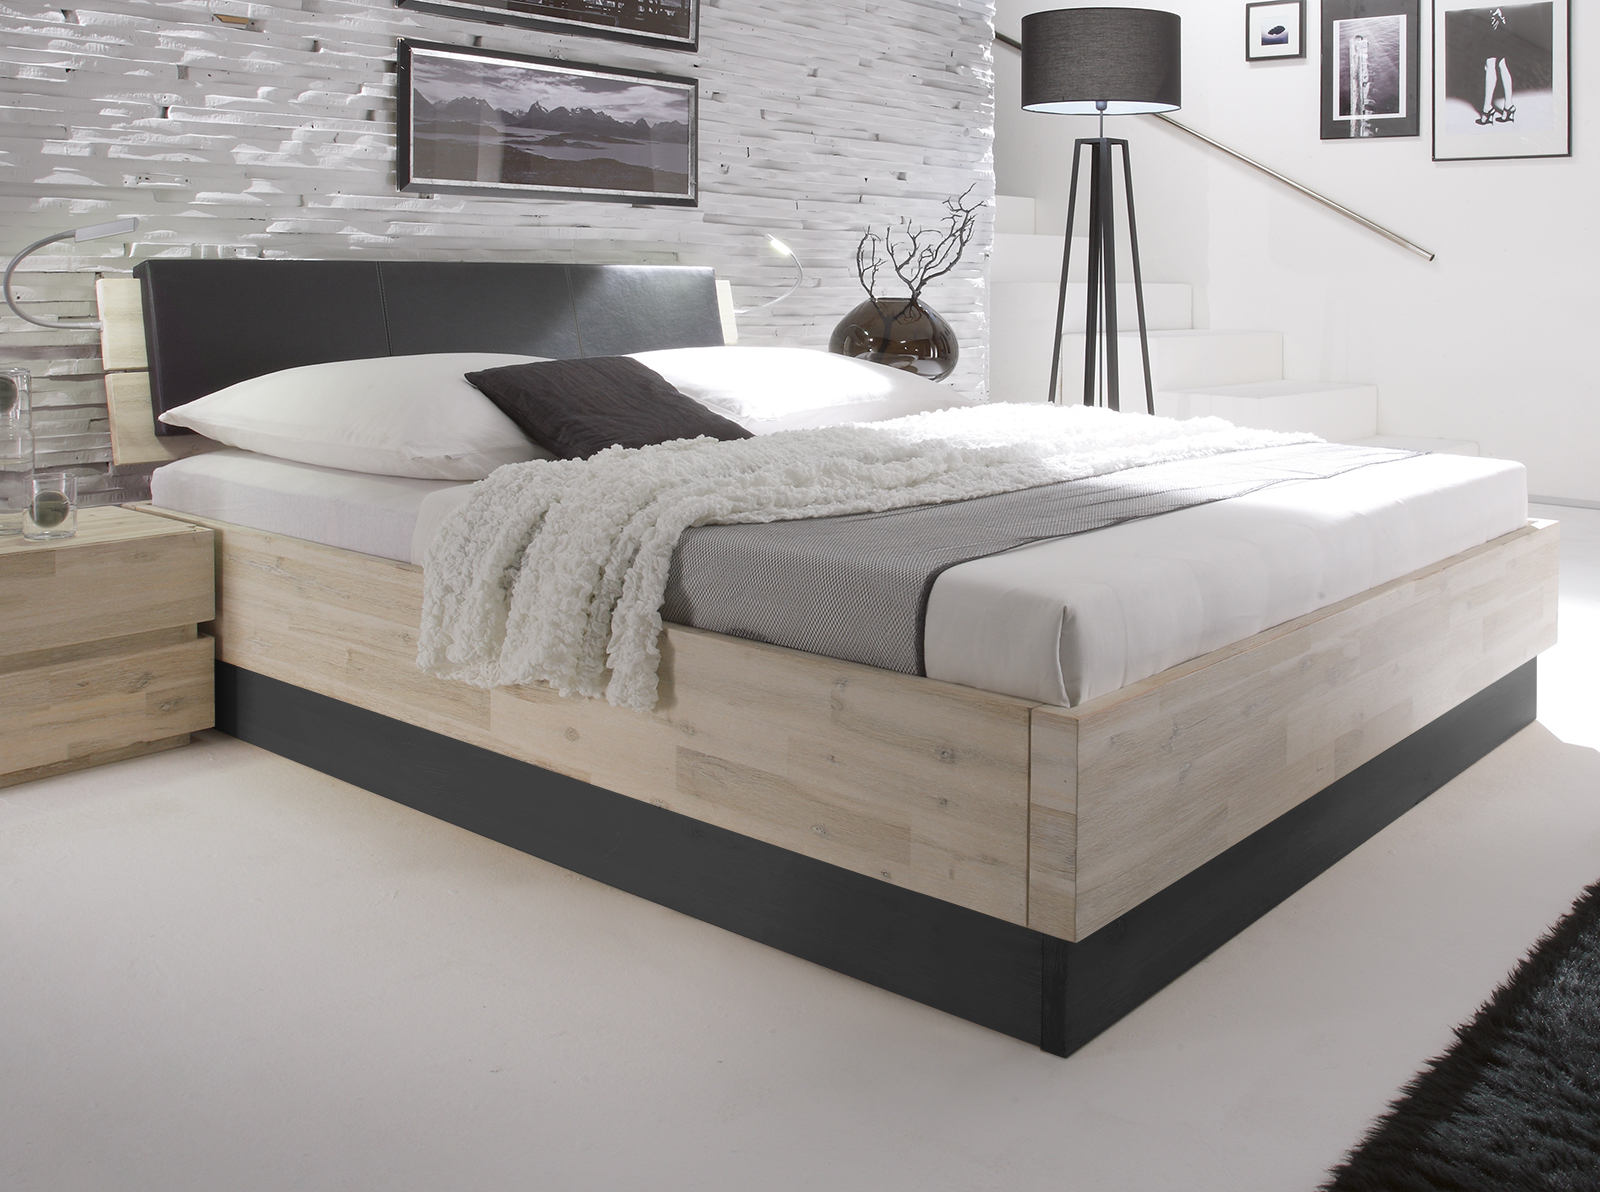 bett holz wei lackiert verschiedene ideen f r die raumgestaltung inspiration. Black Bedroom Furniture Sets. Home Design Ideas